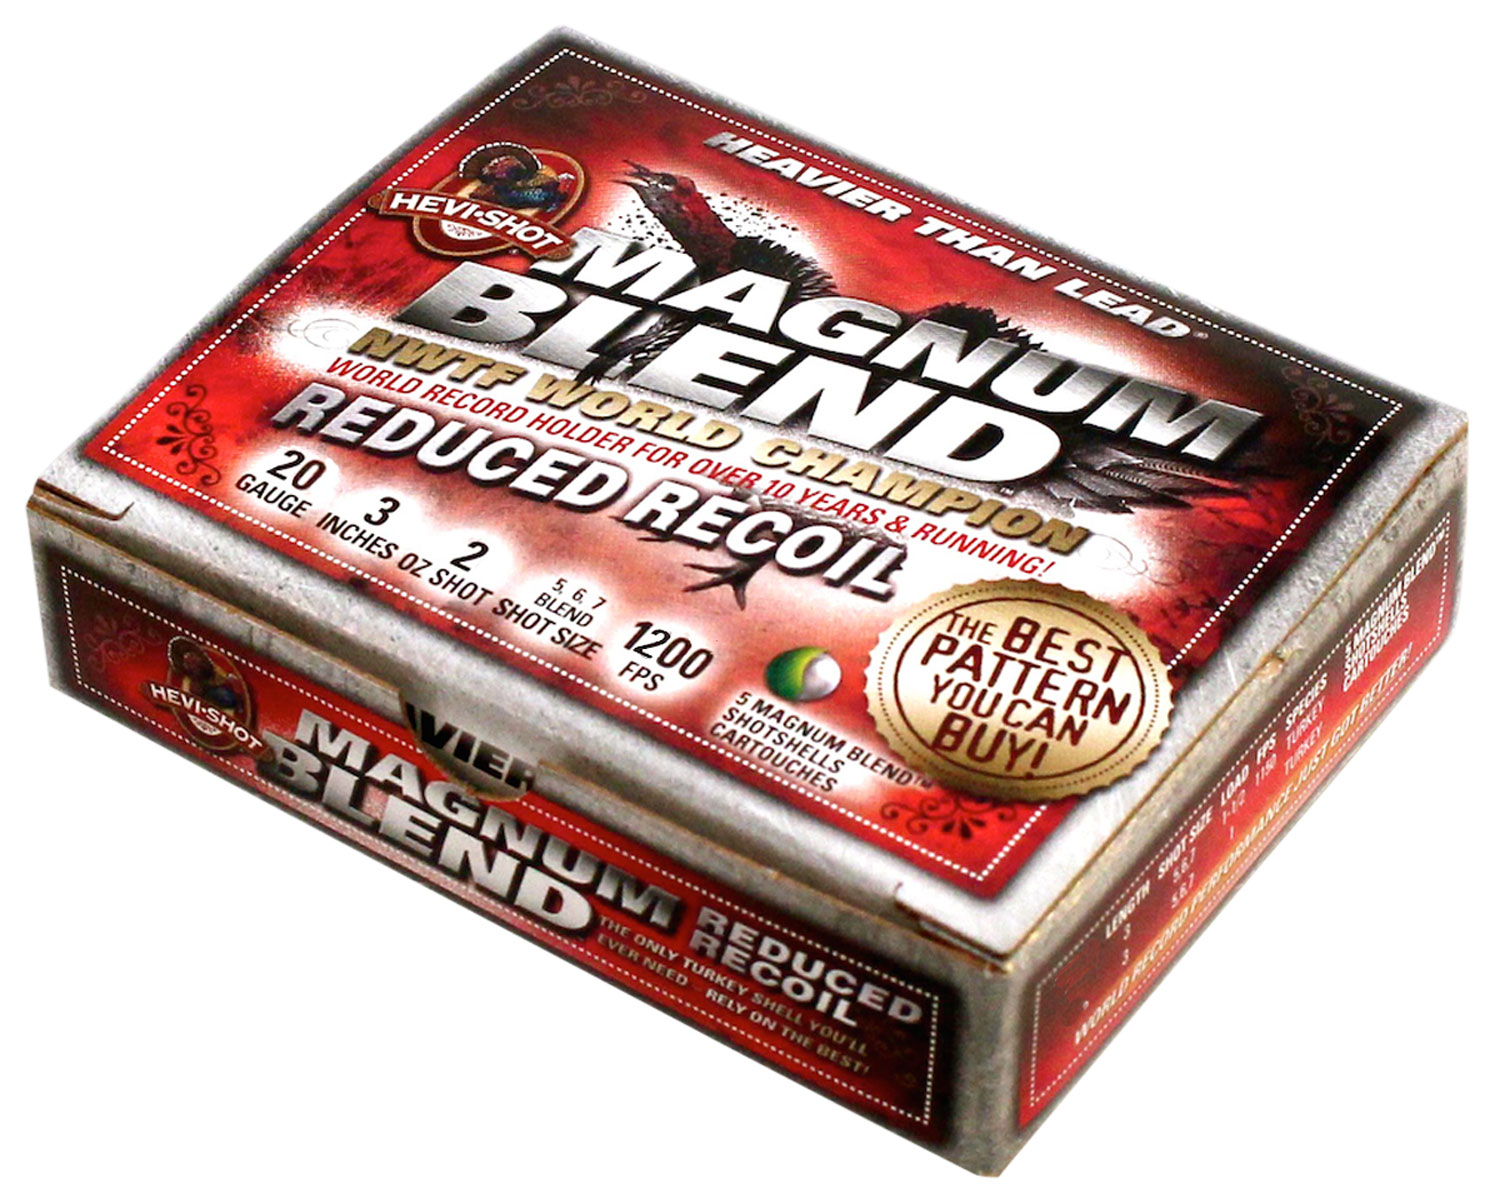 Hevishot 2567 Magnum Blend Reduced Recoil  12 Gauge 3